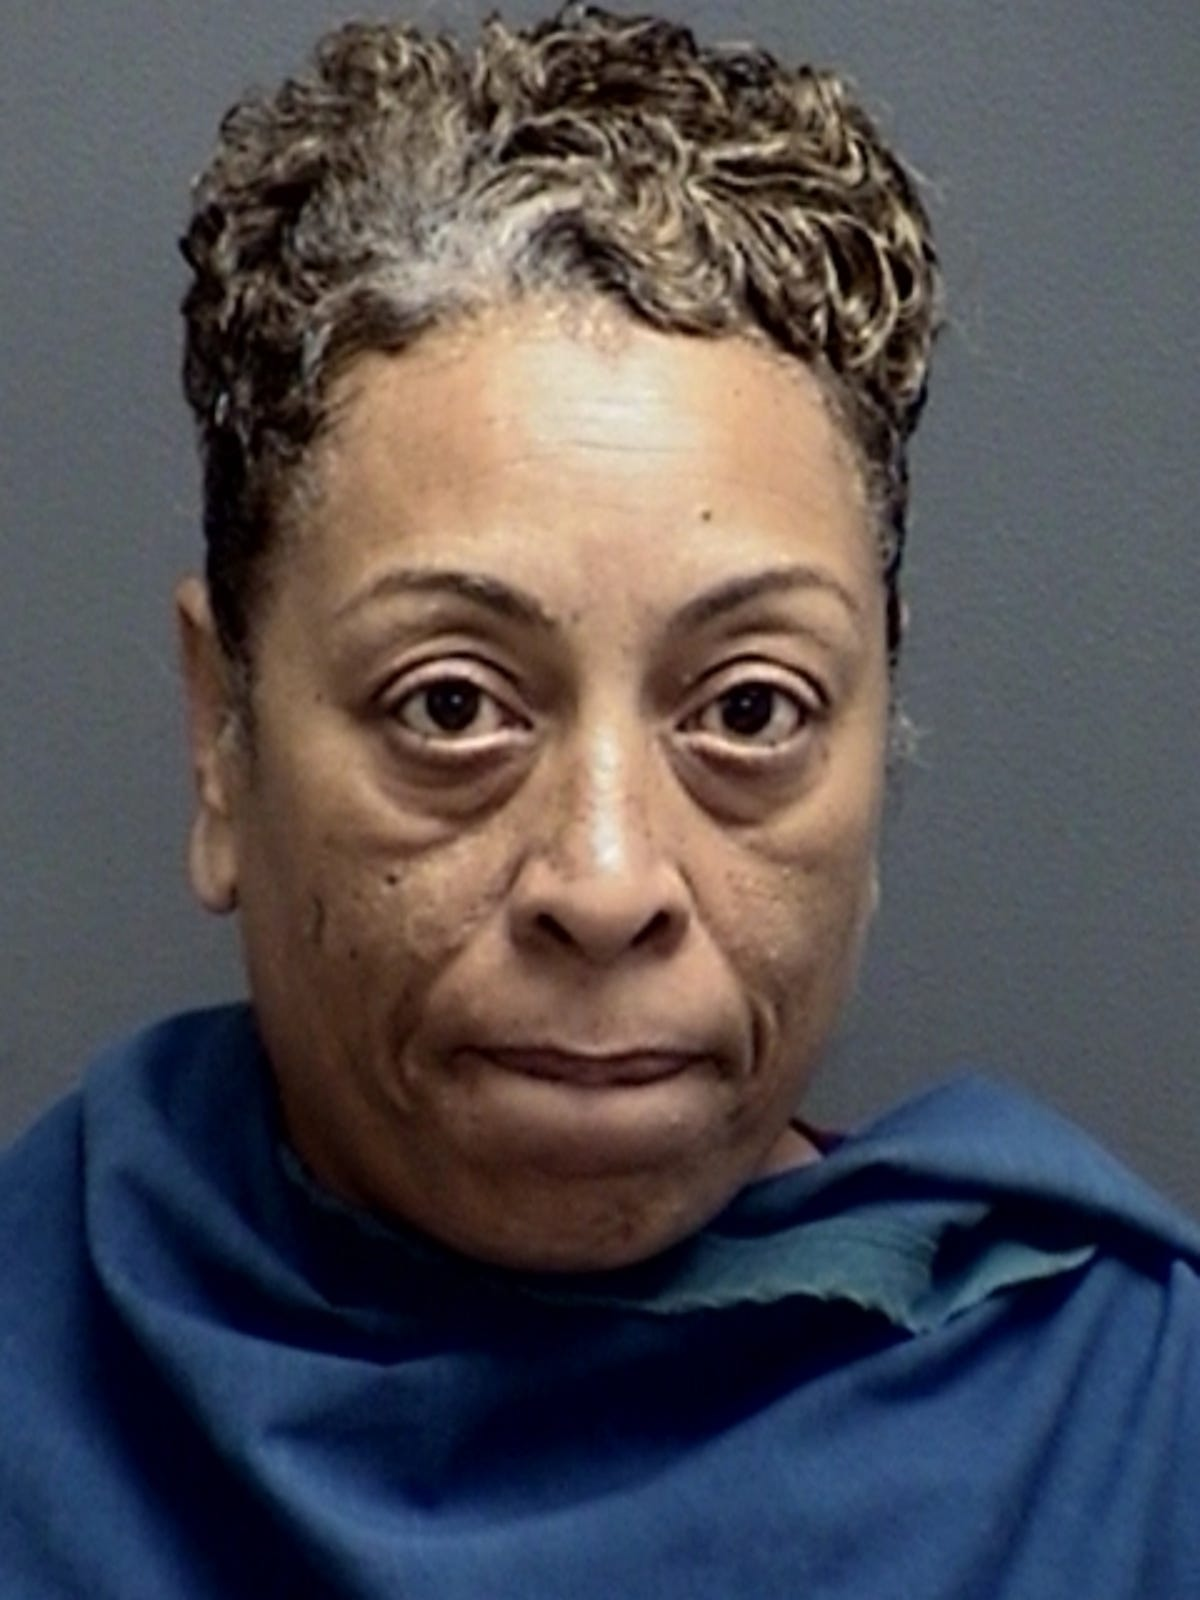 Former correctional officer accused of deceiving state